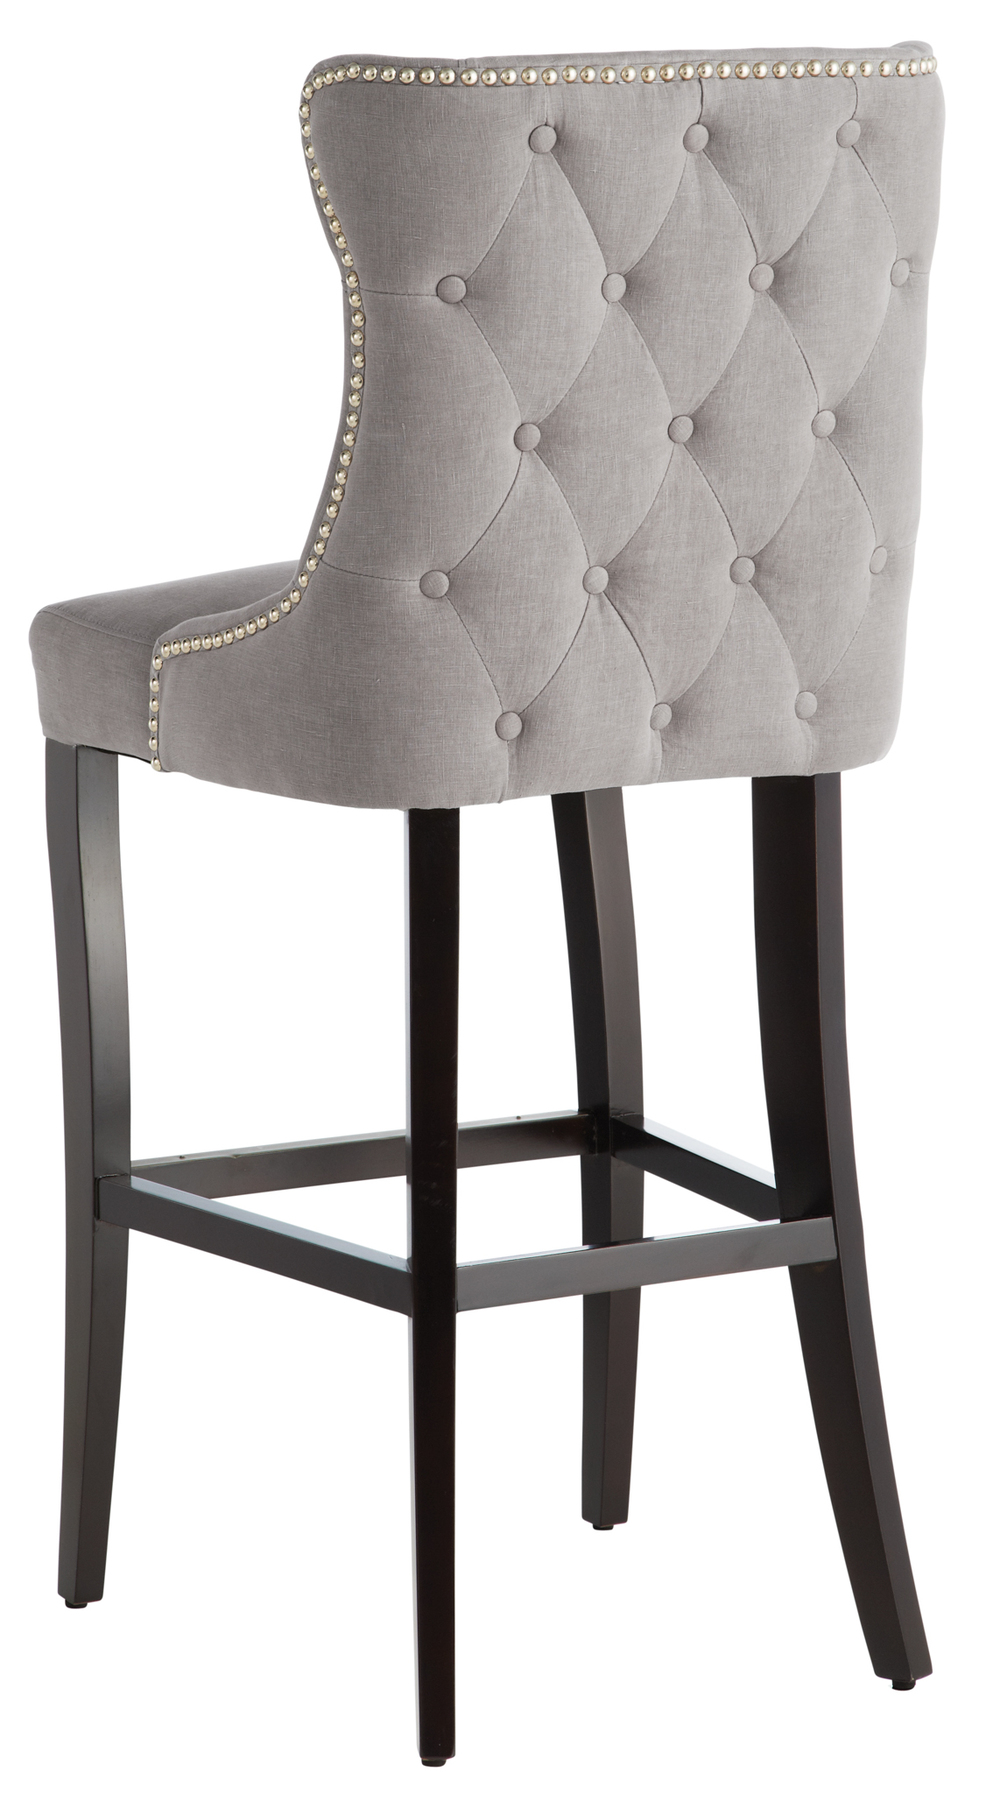 Barbuda Barstool in Gray from Sunpan.